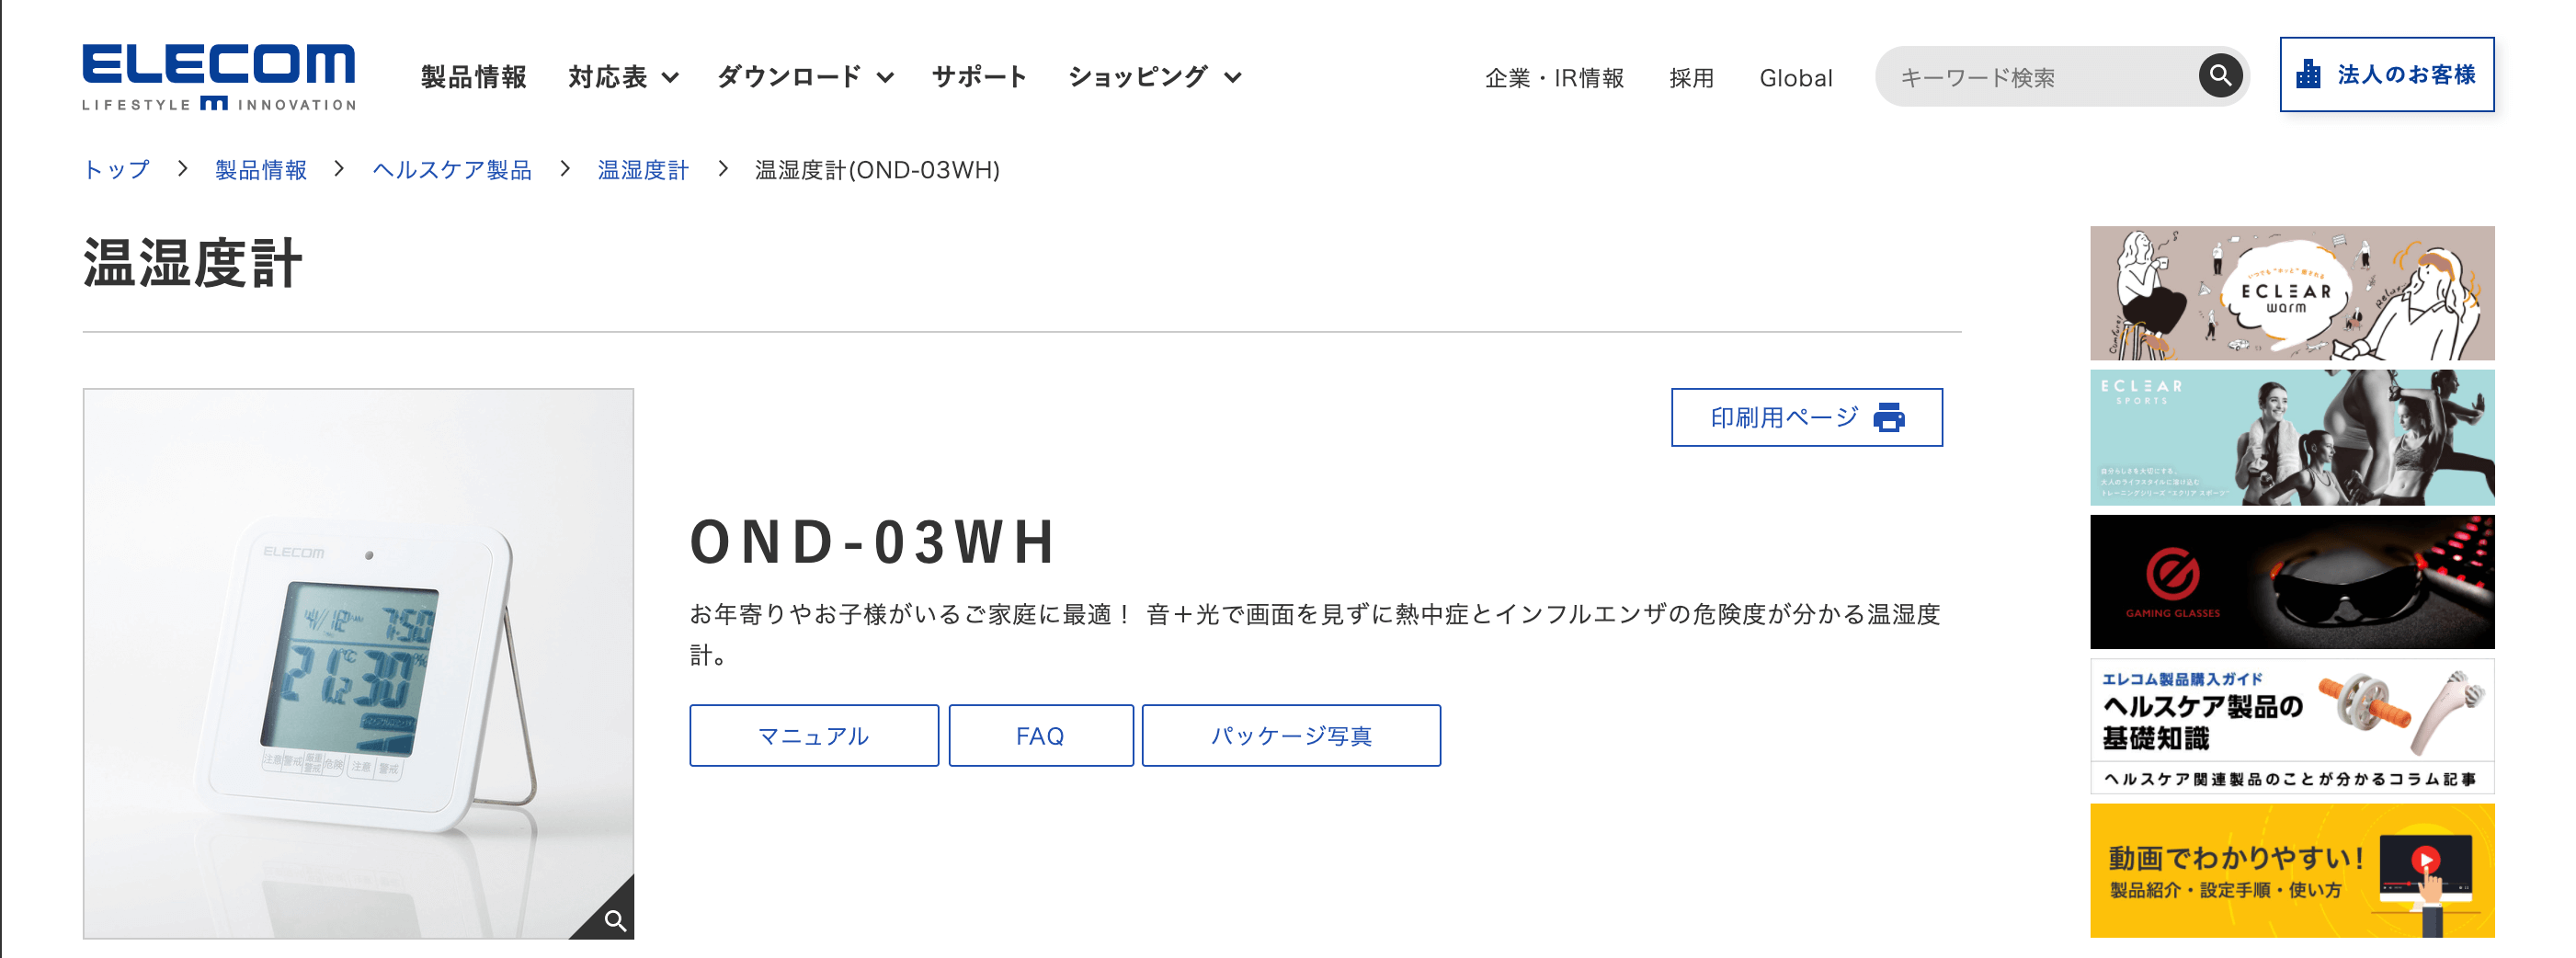 OND-03WH